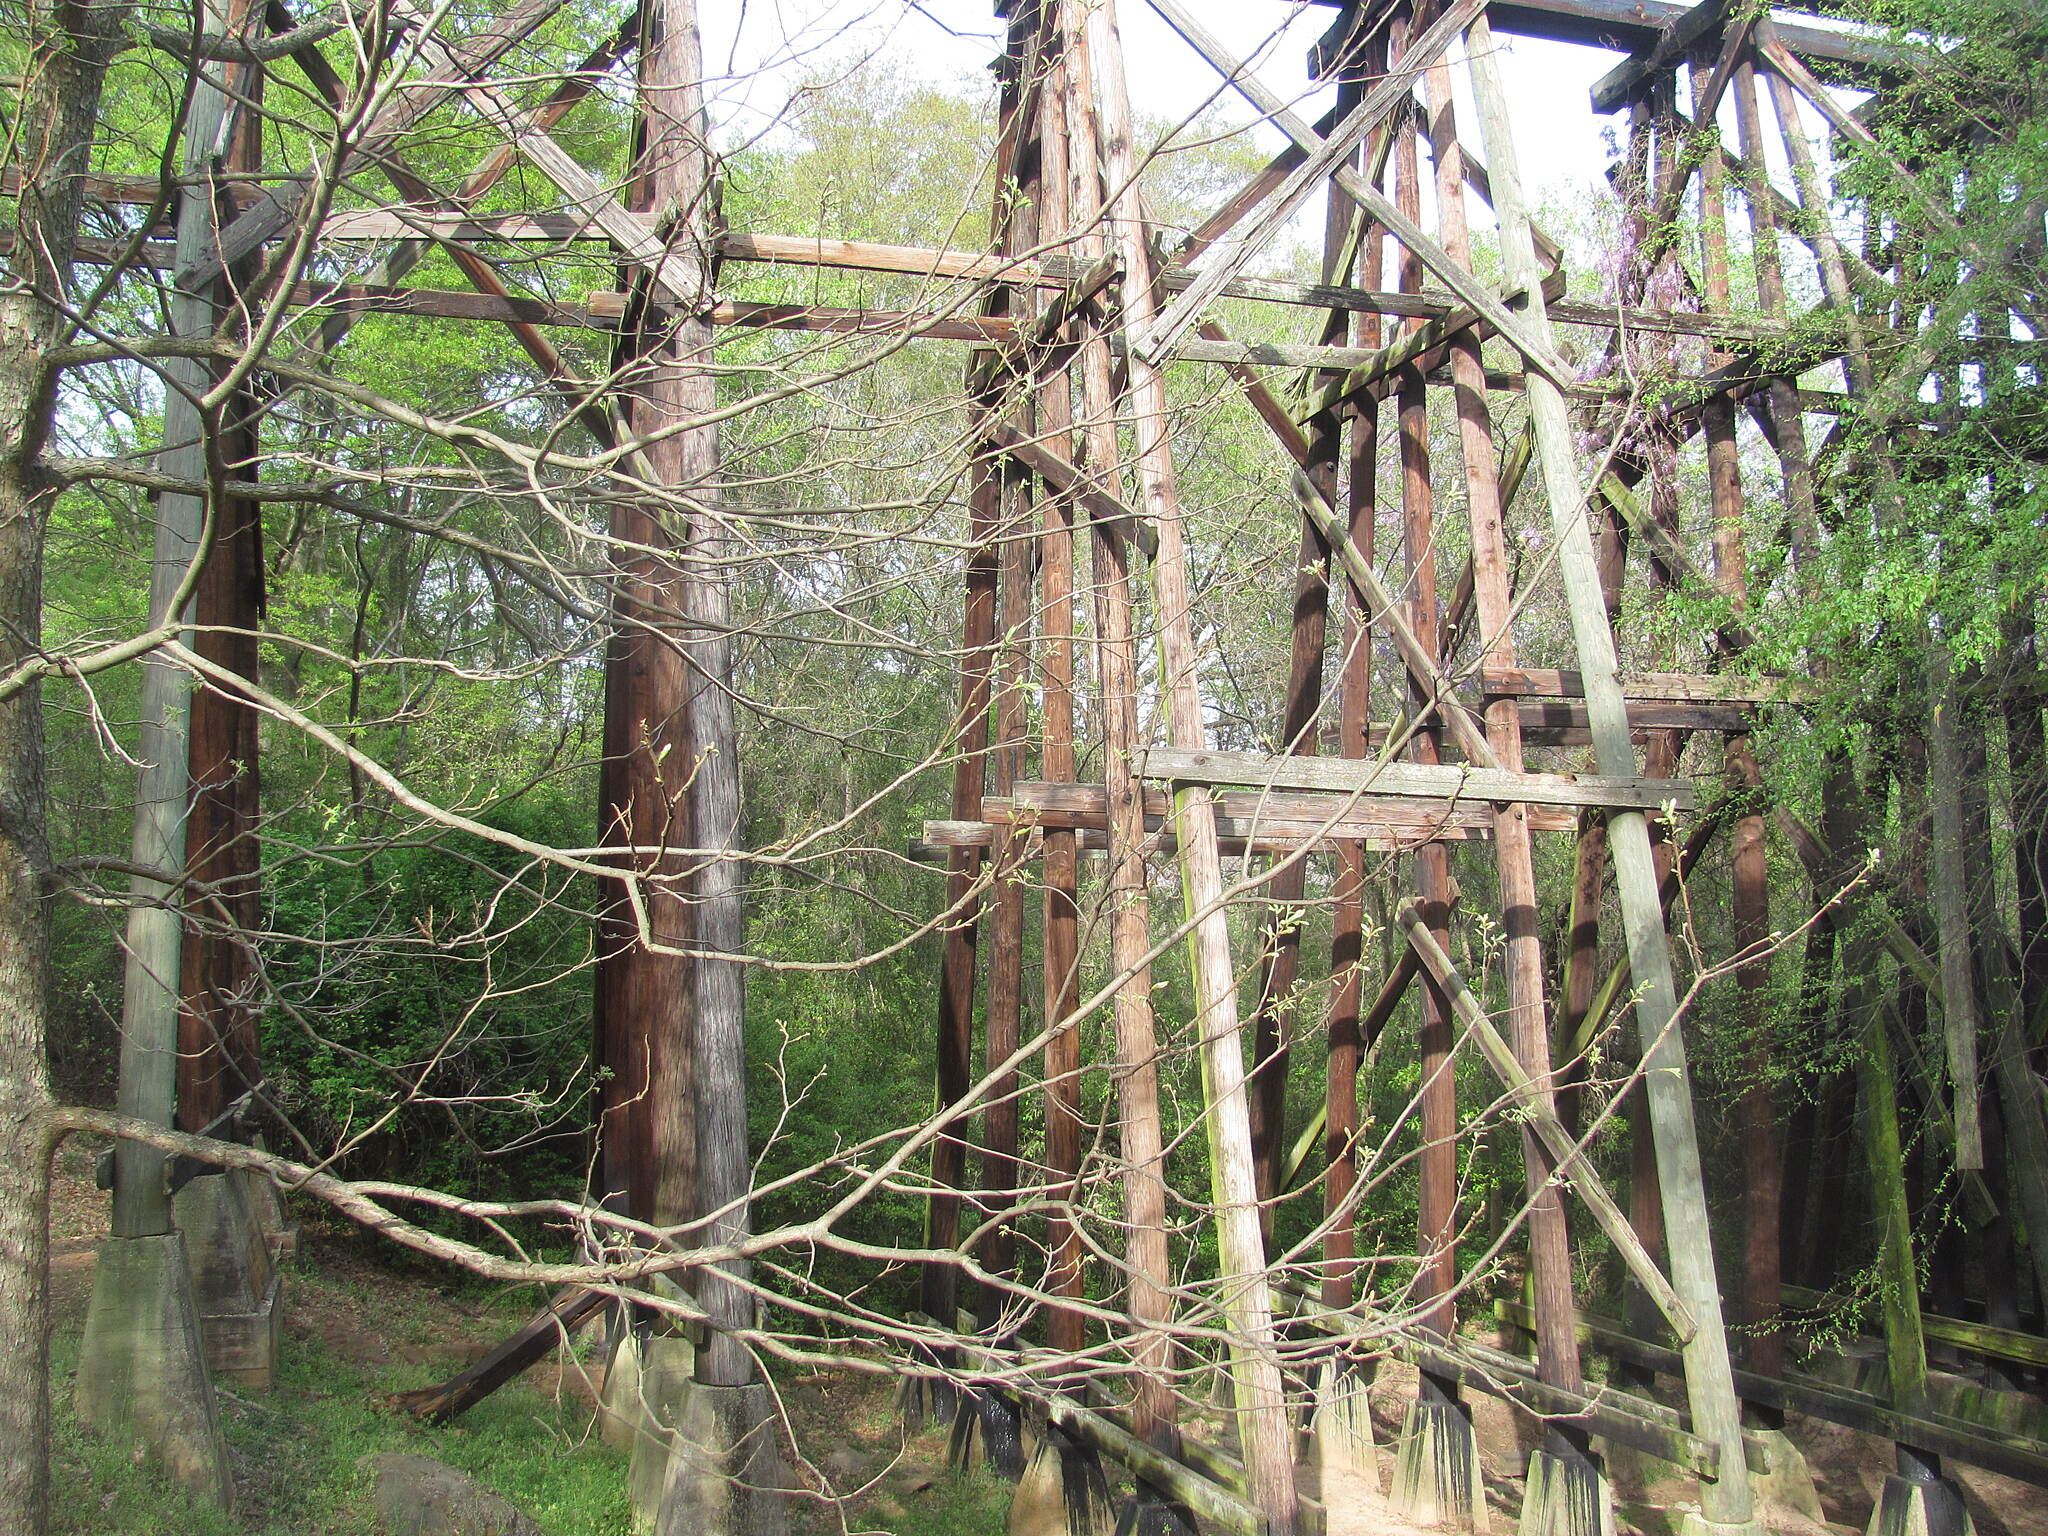 North Oconee River Greenway Old Railroad Trestle You might Recognize this REM 'Murmer' landmark. This is where the proposed Firefly trail would approach Athens.